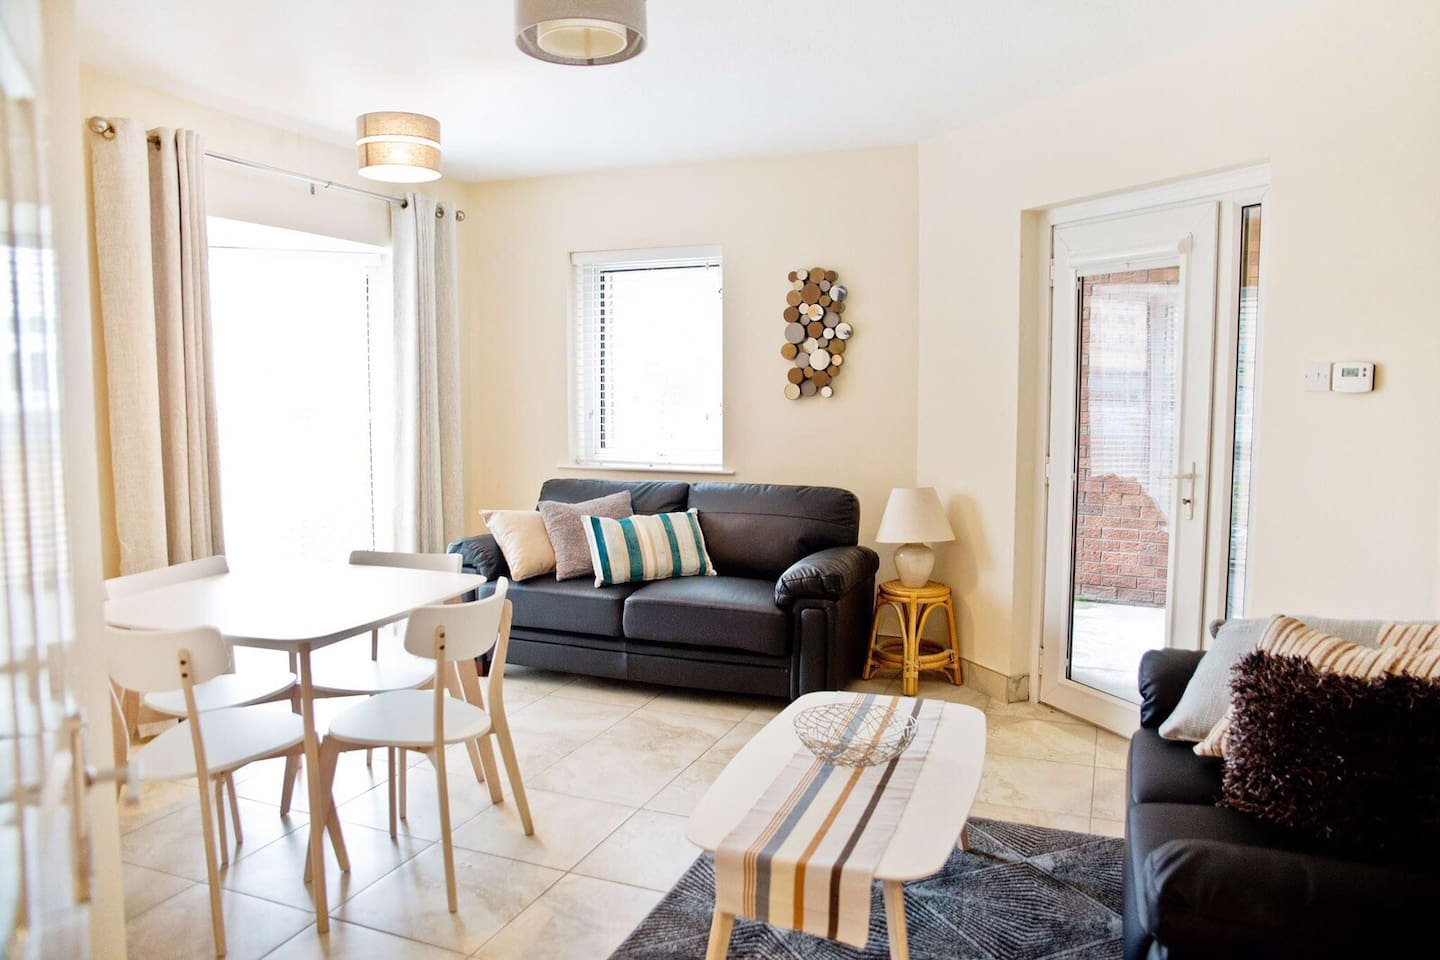 Enjoy views of the river Lagan from the living room and balcony